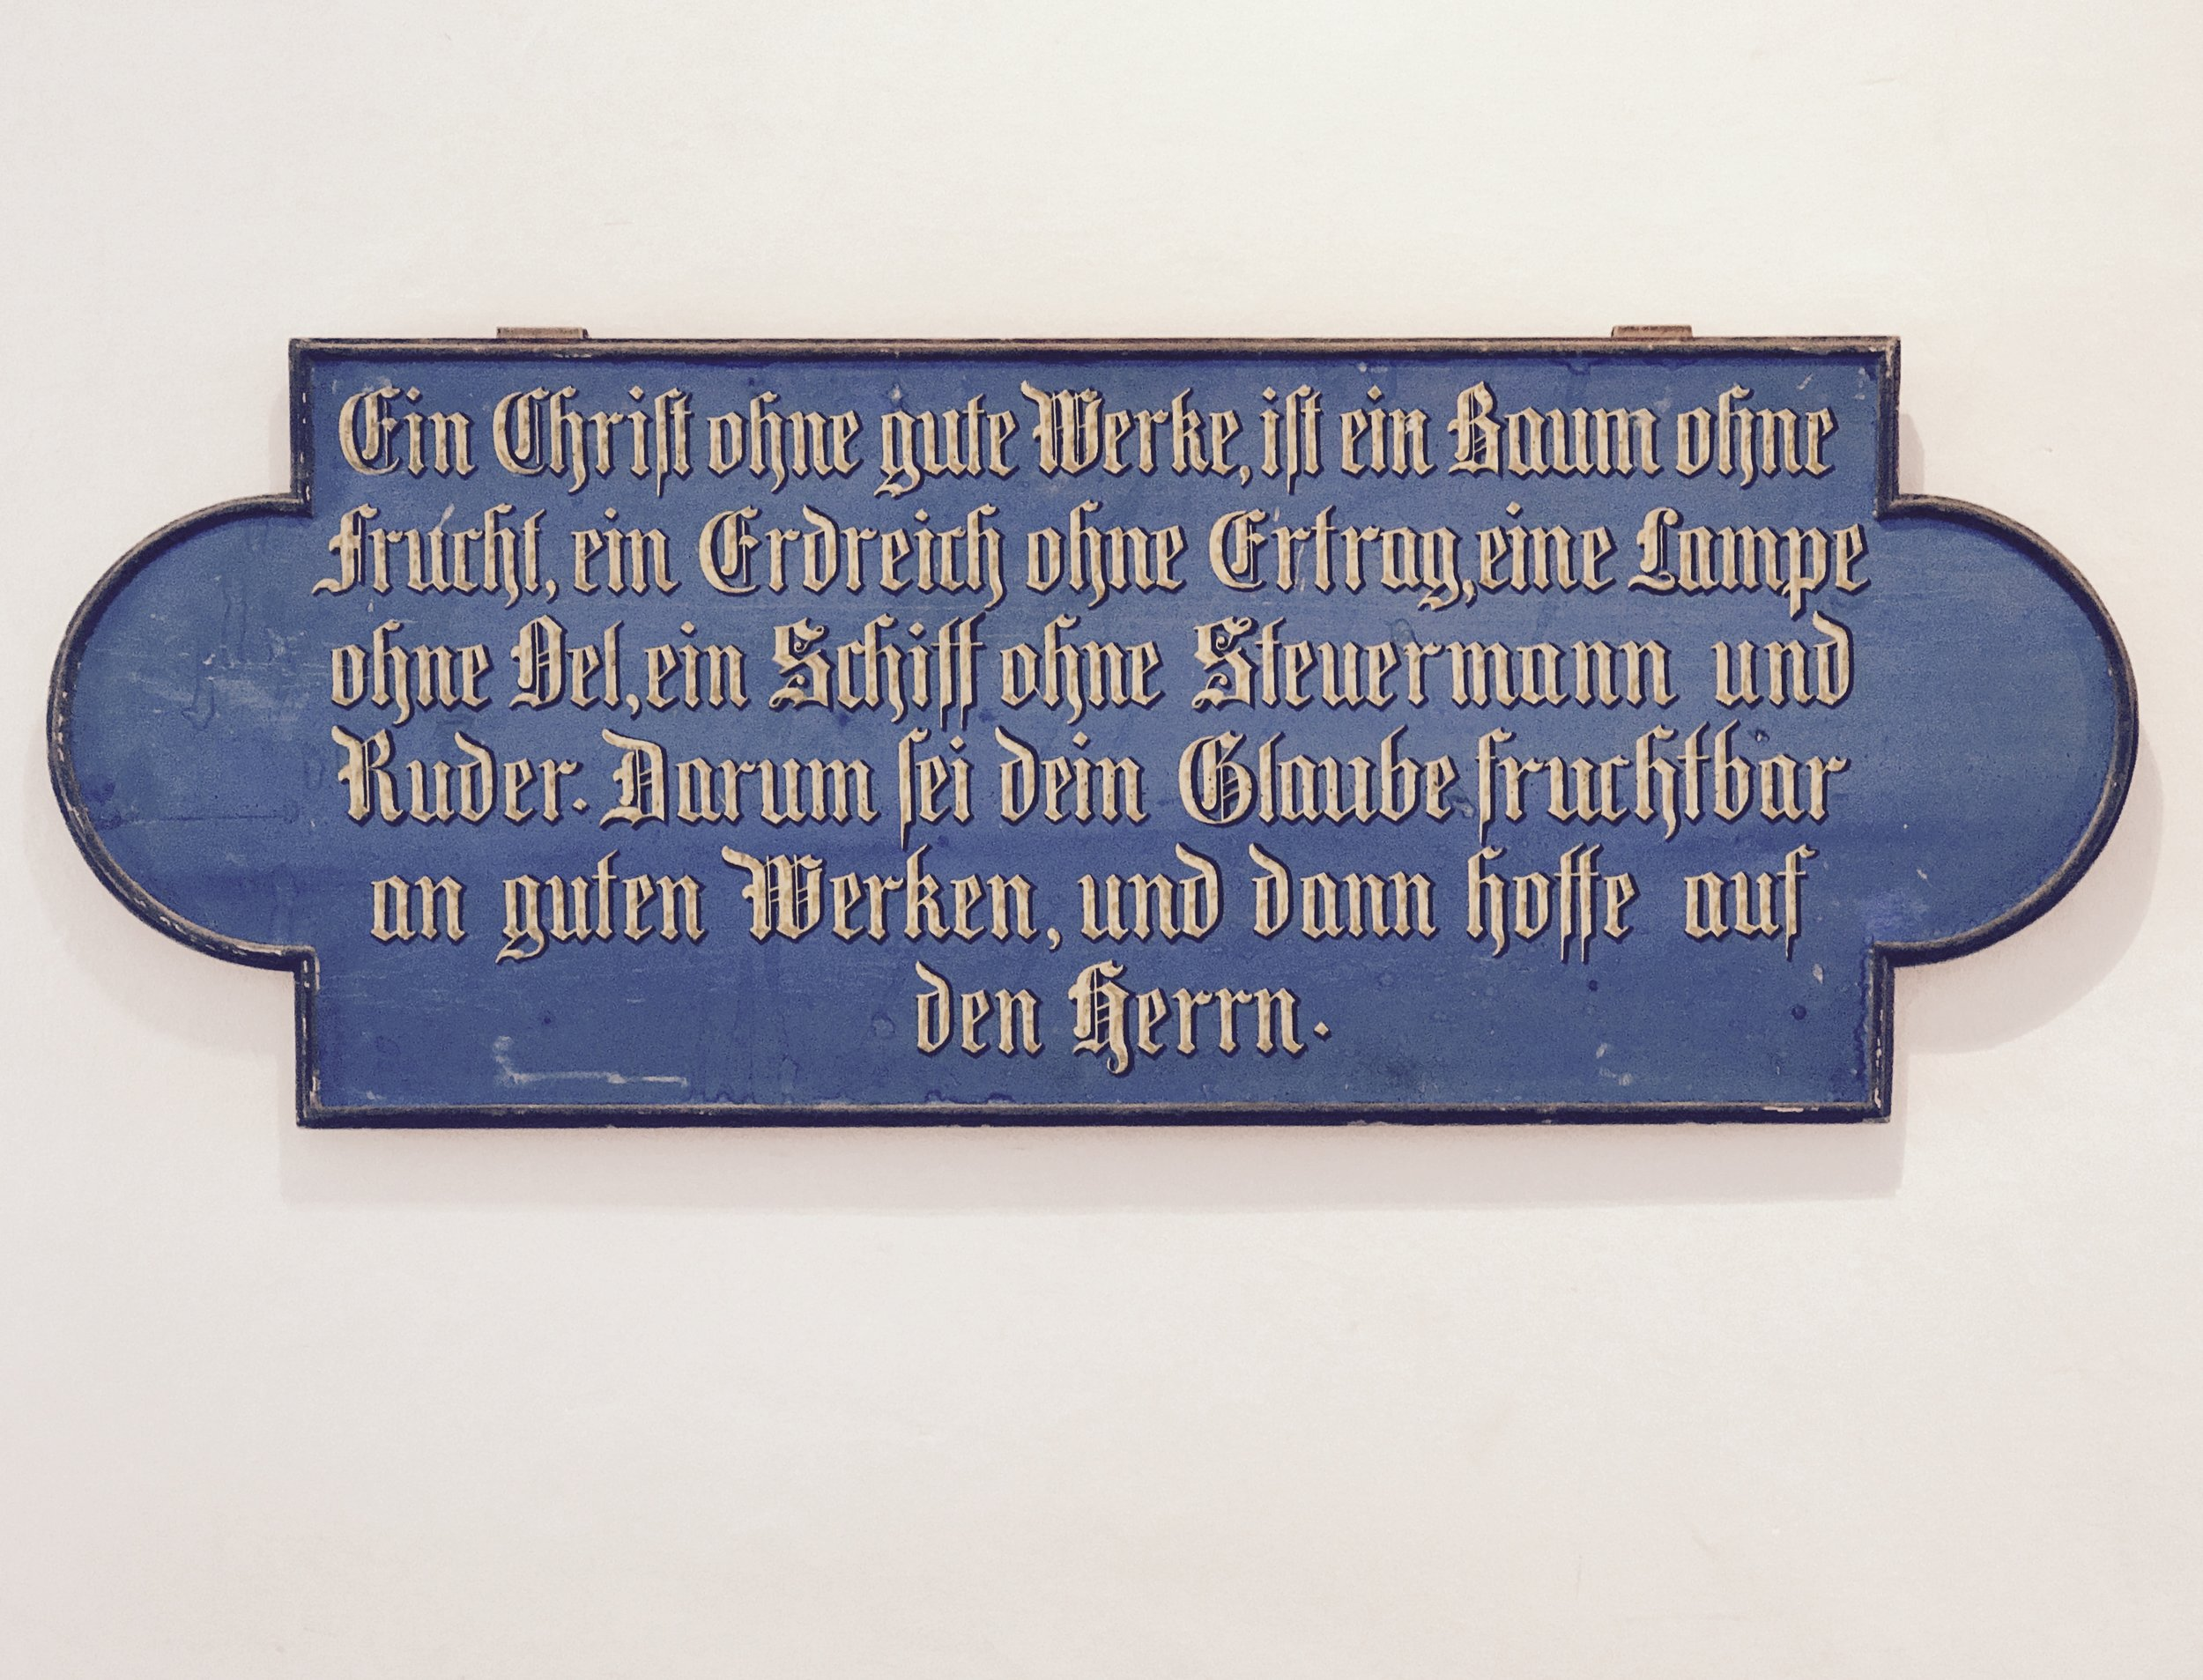 Psalms and Bible quotes displayed throughout the abbey